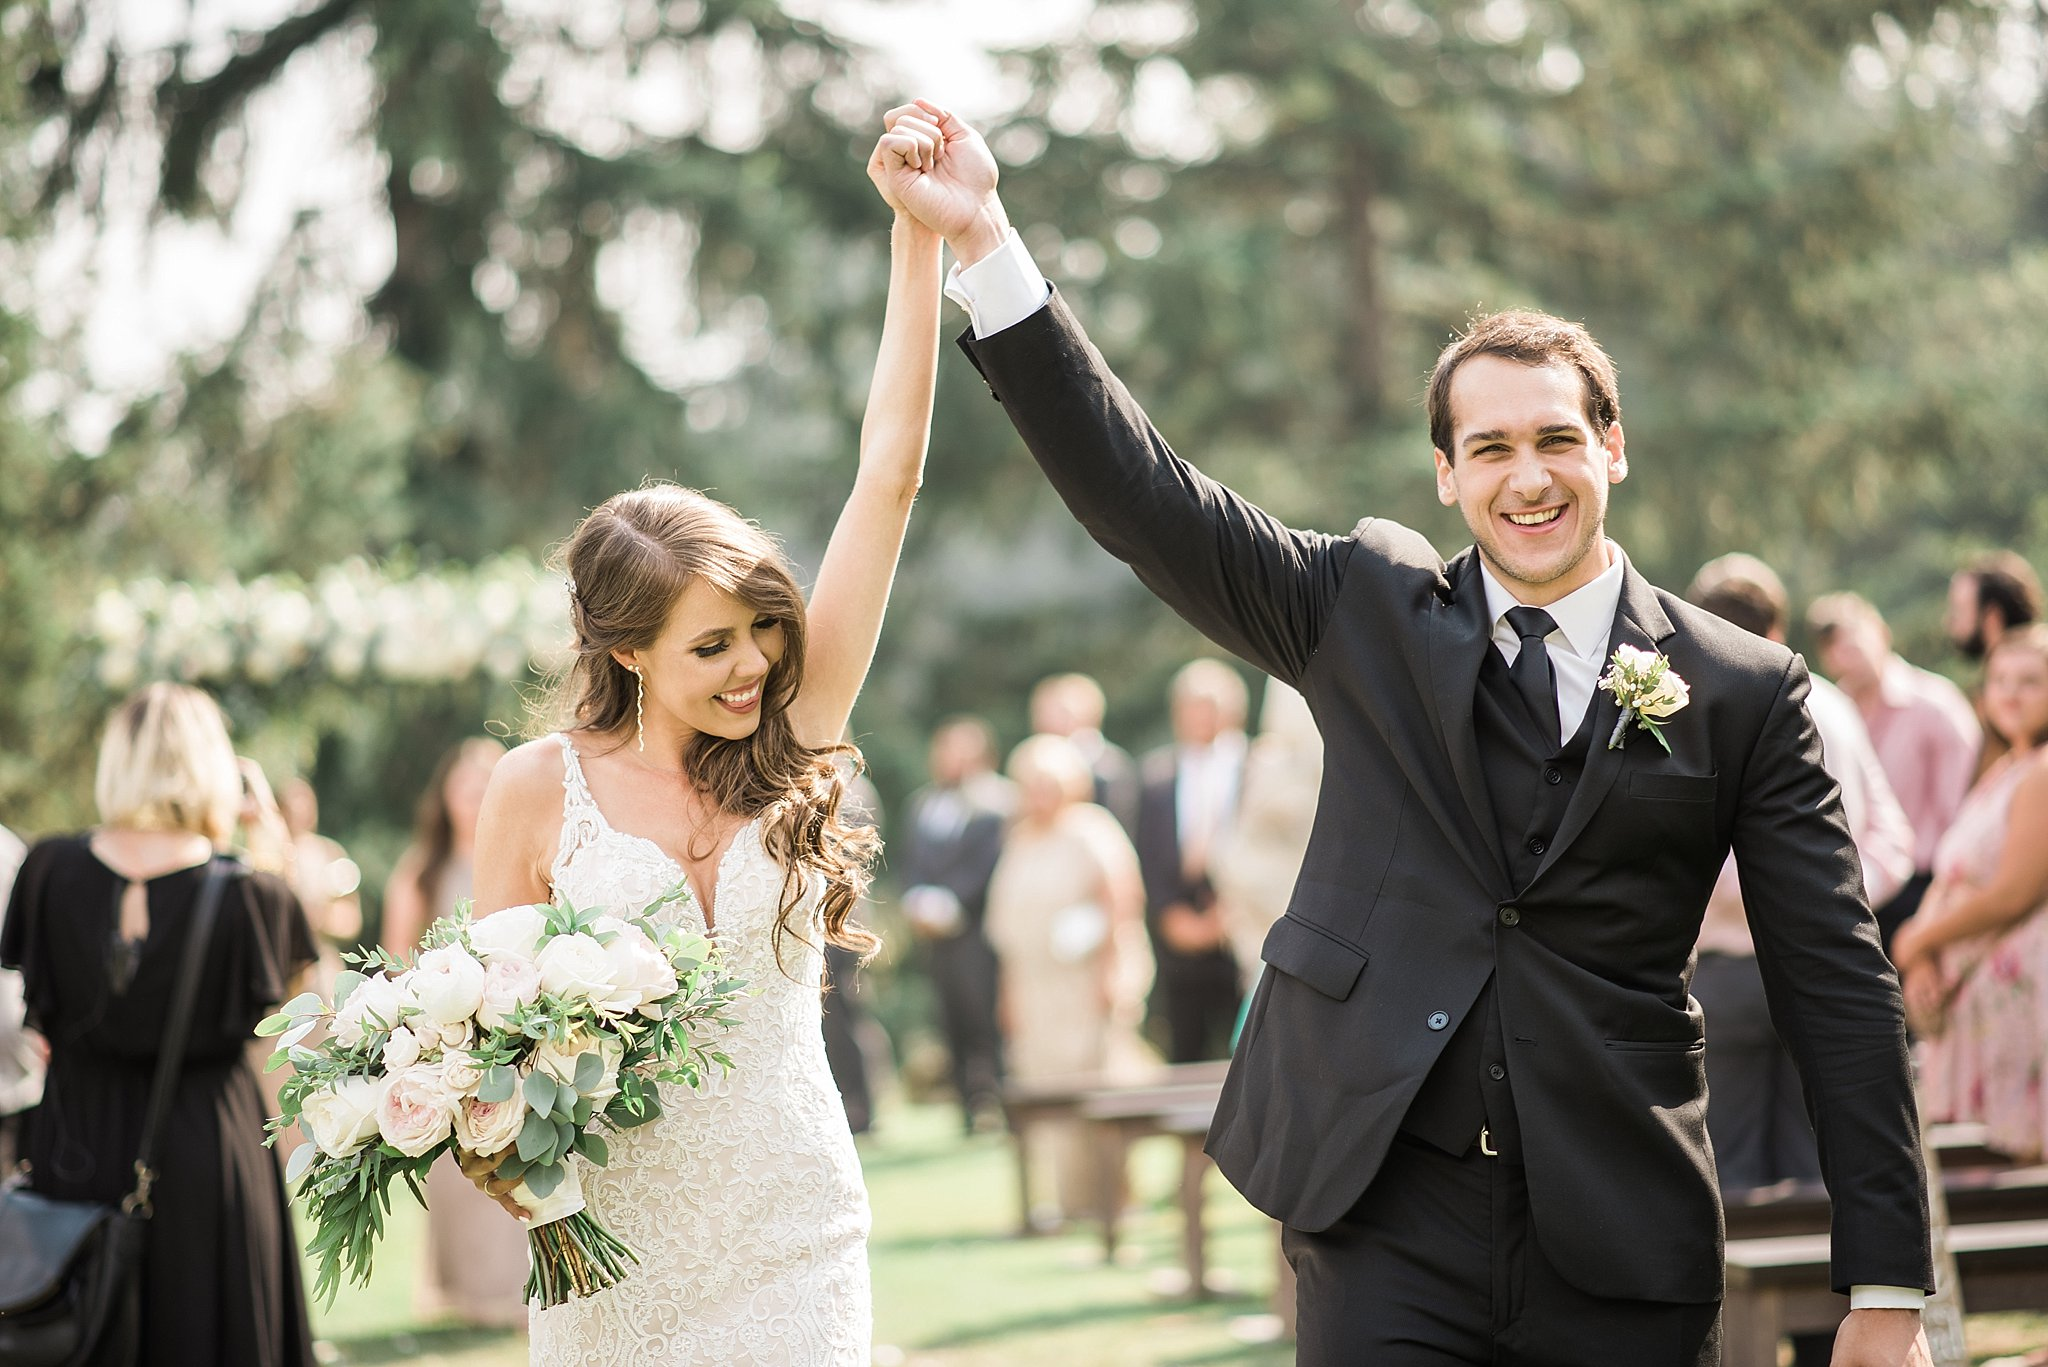 That just married feeling. Must have photo for your wedding day!